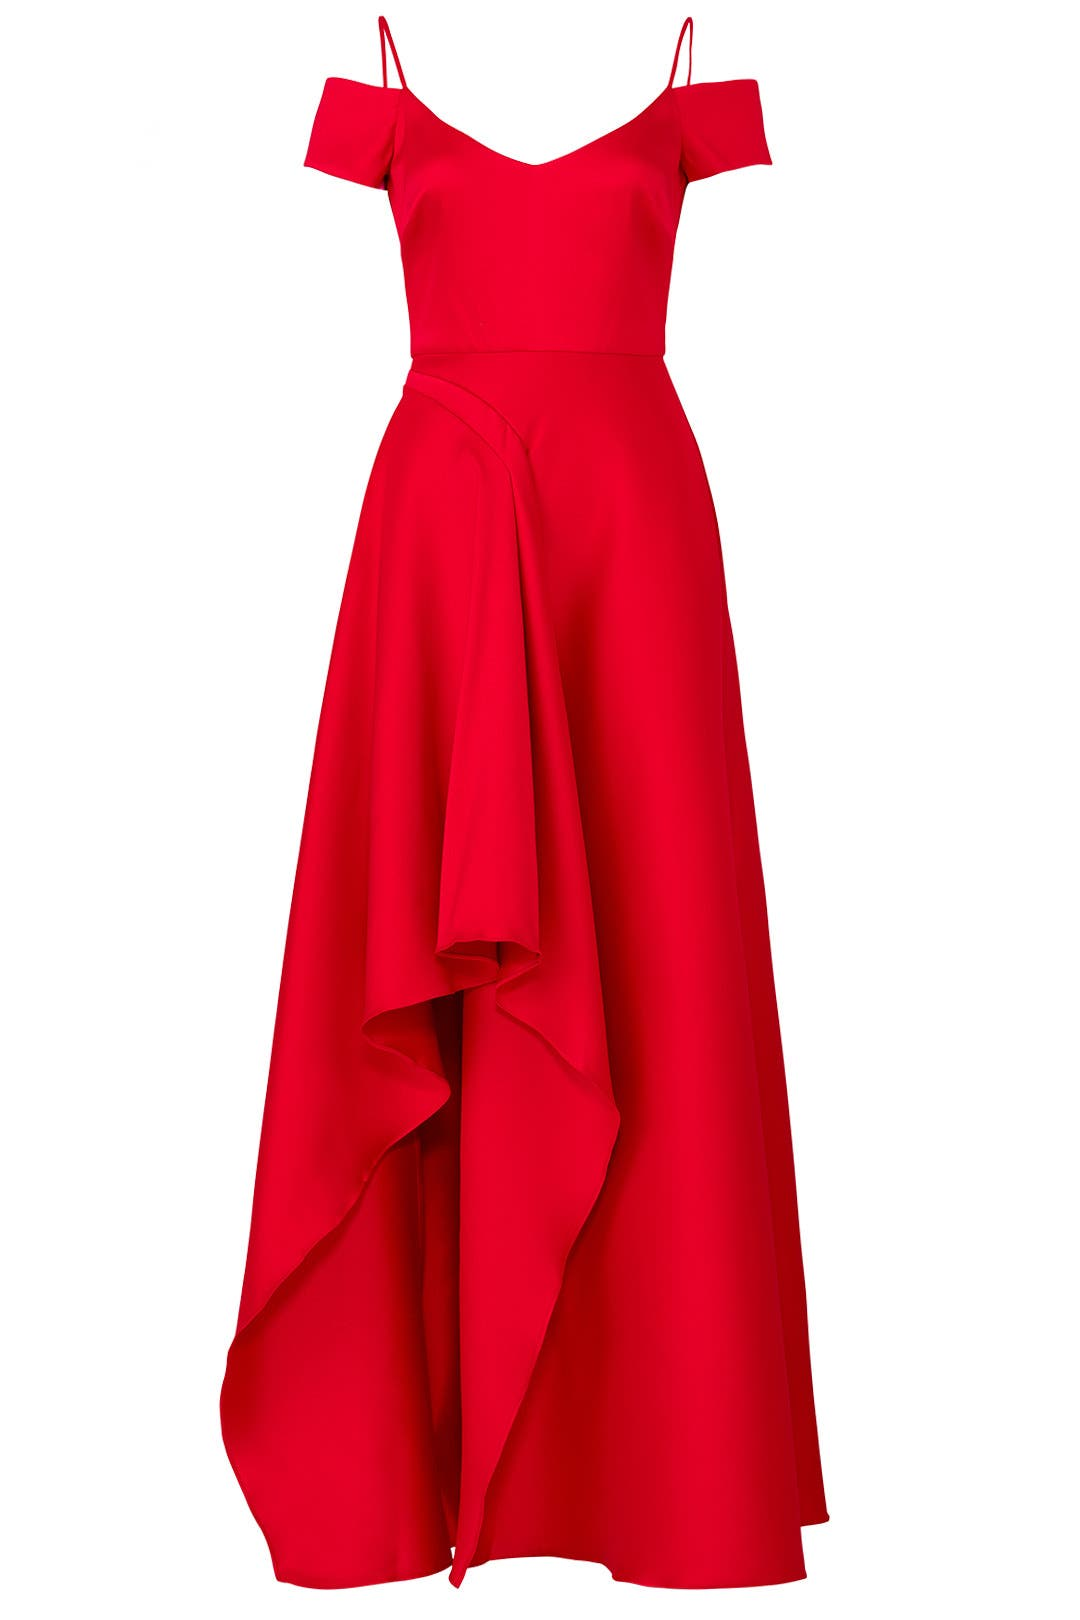 Red Asymmetrical Gown by Badgley Mischka for $145 | Rent the Runway